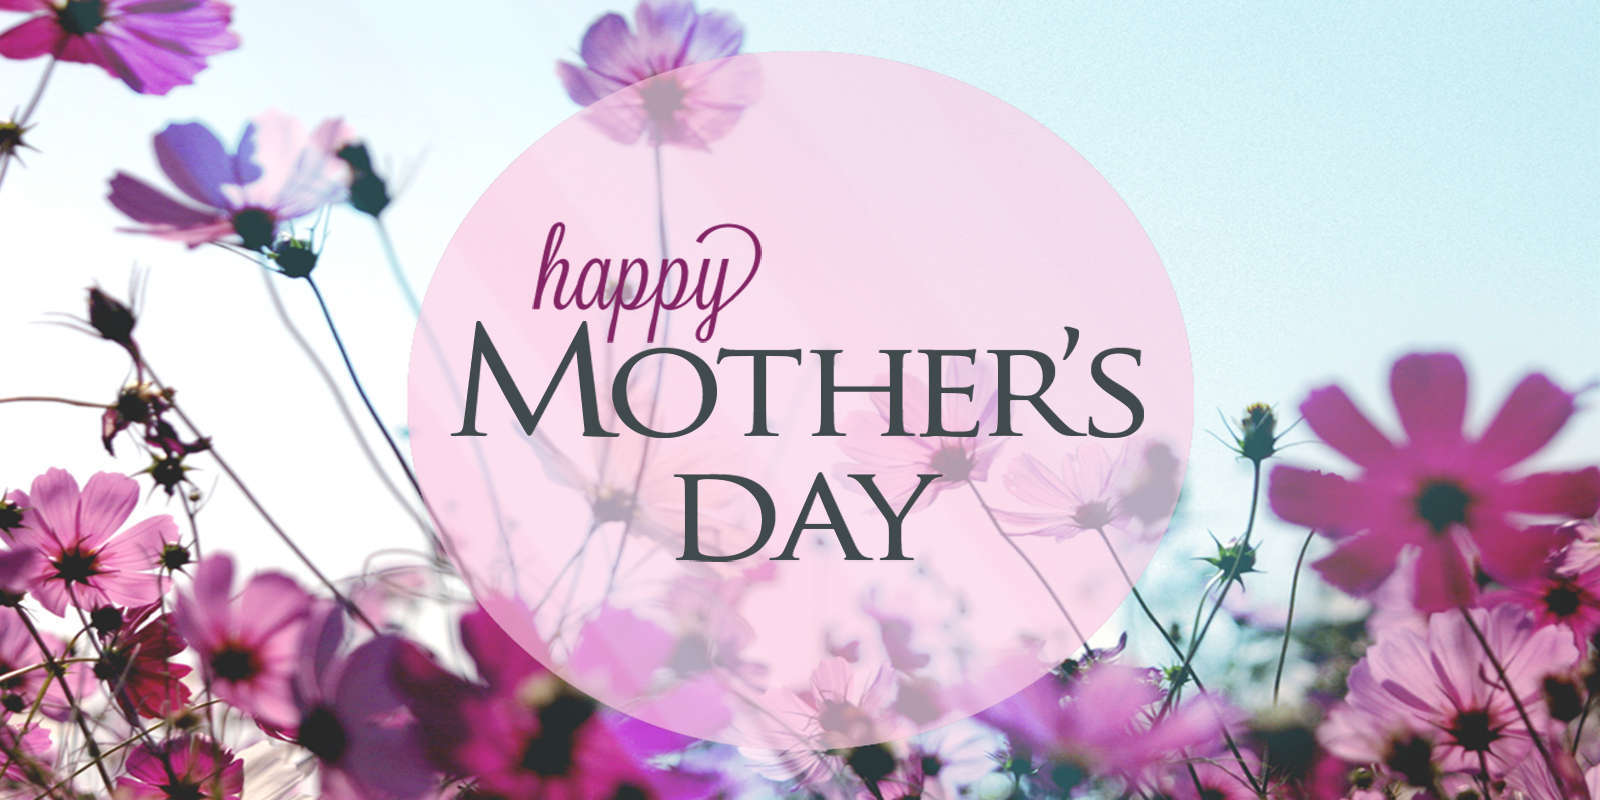 Wallpapers Of Happy Mothers Day